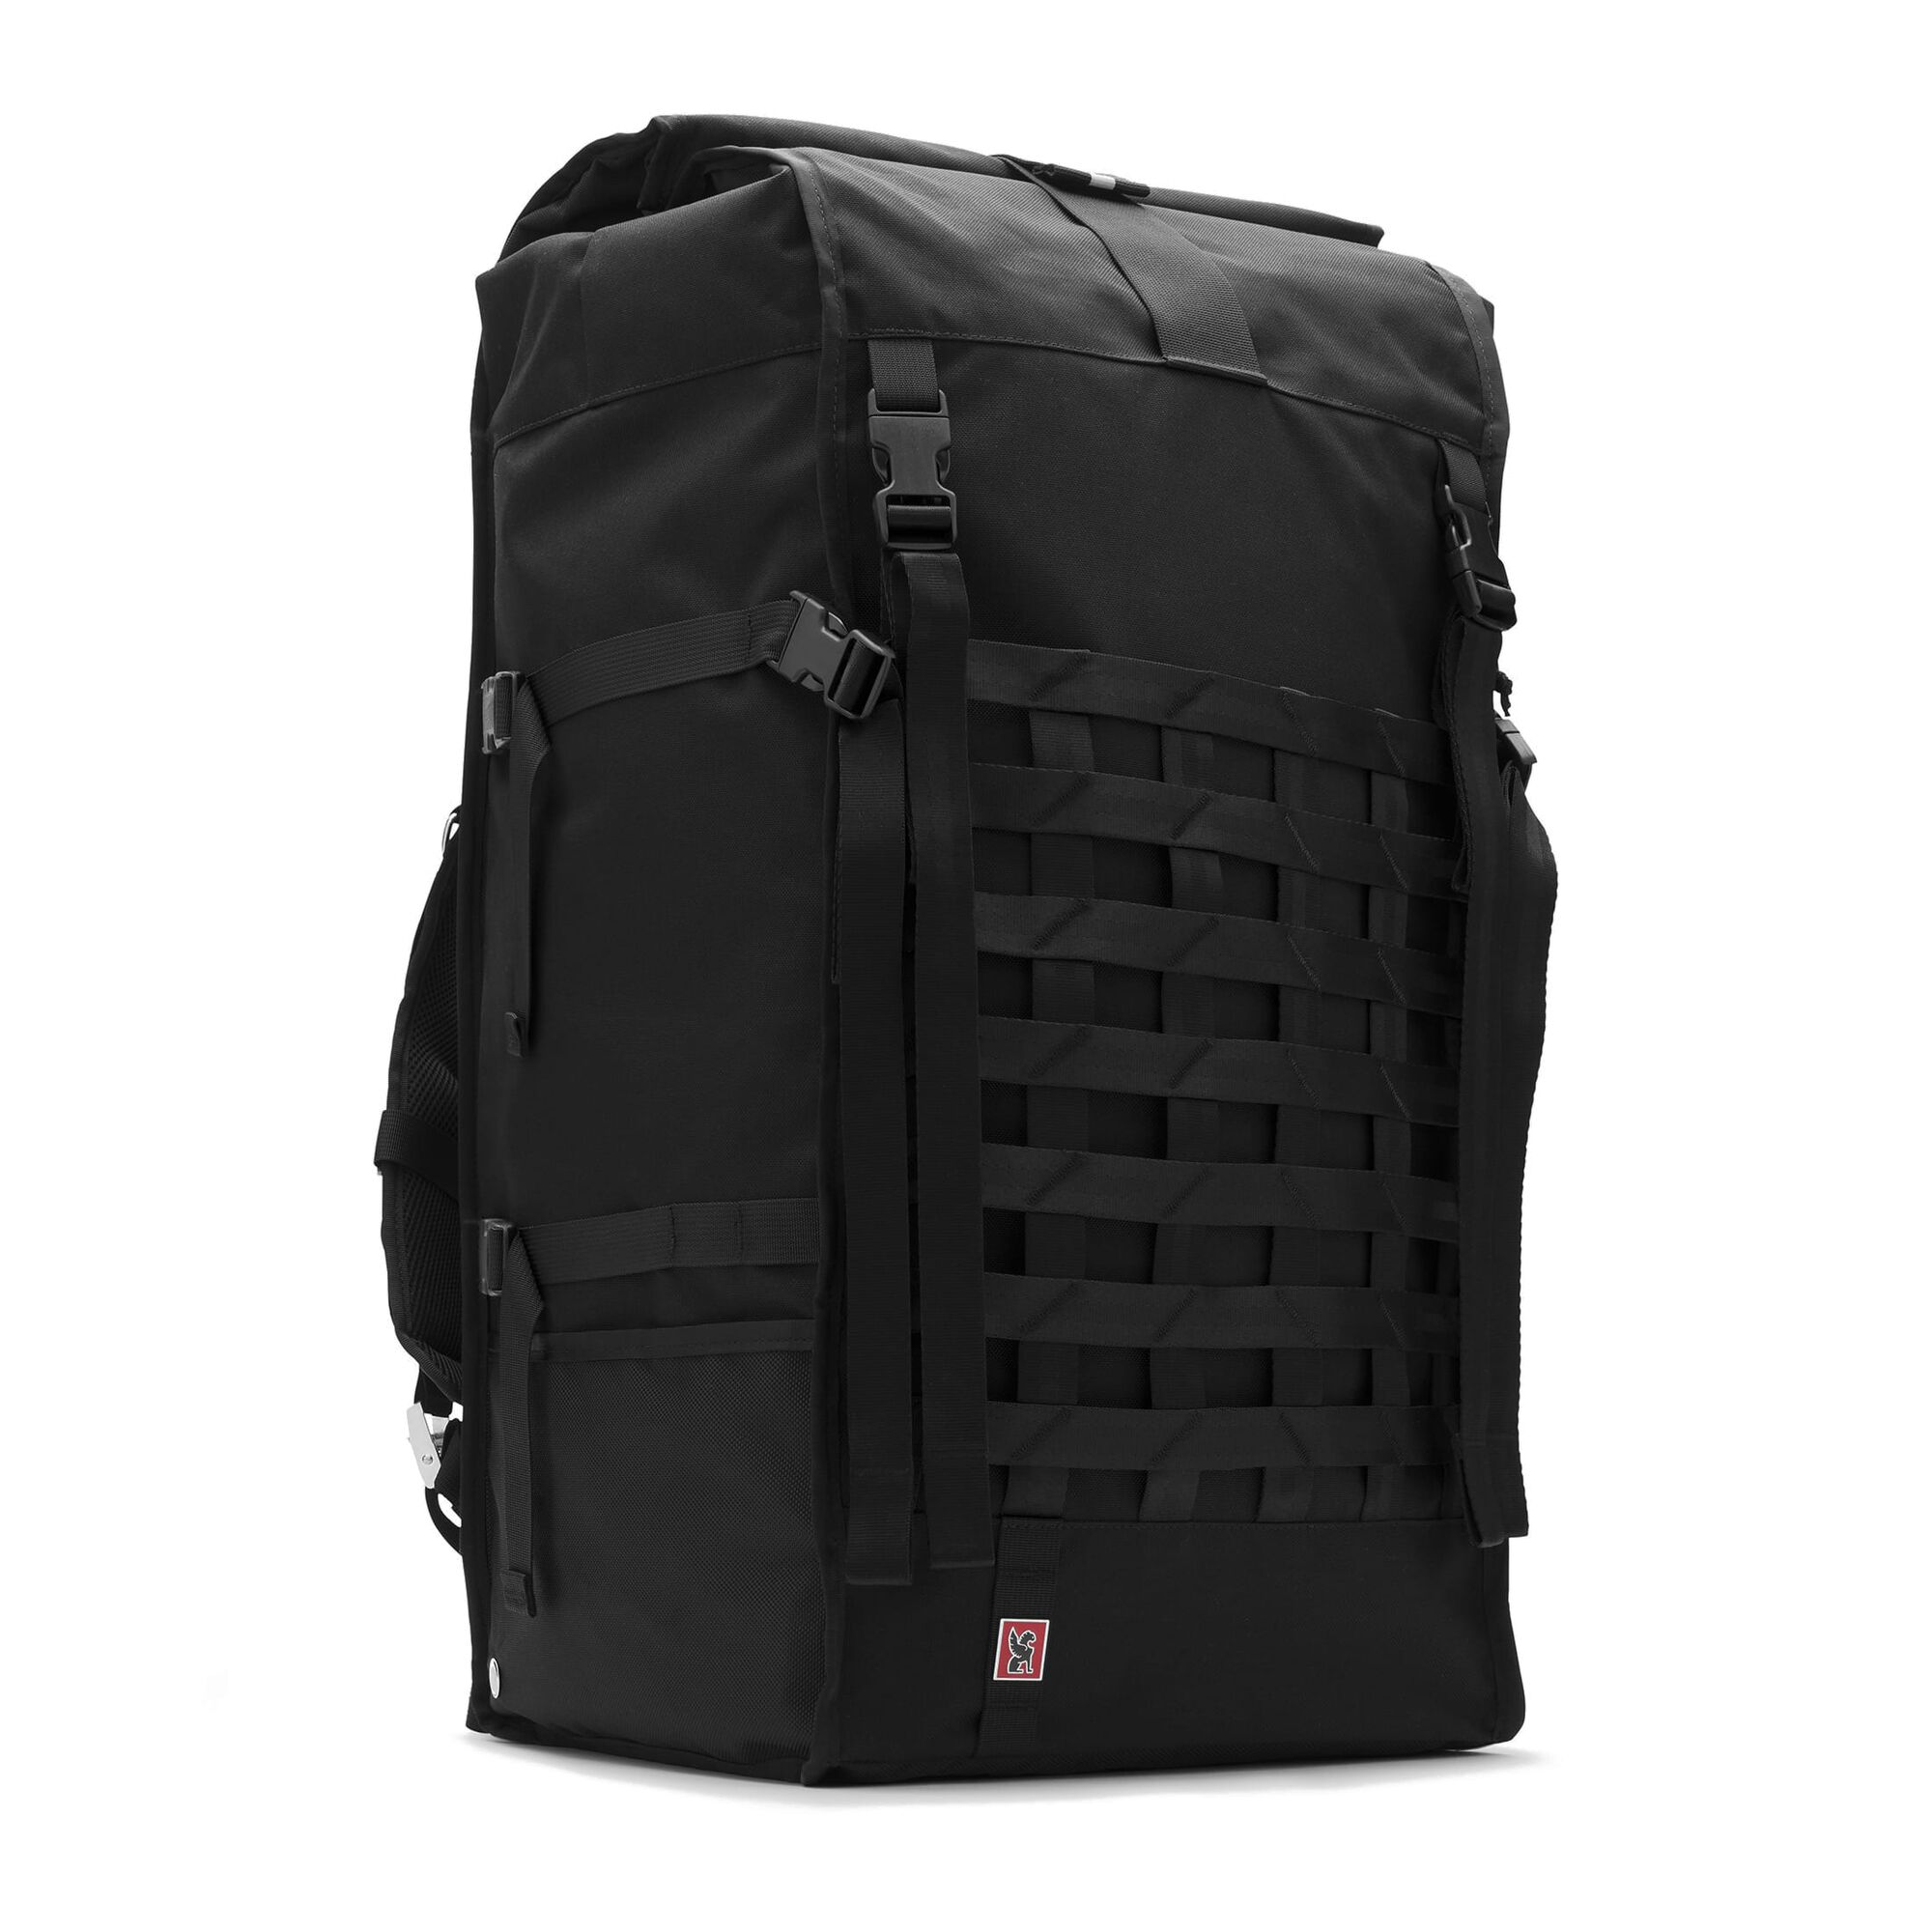 Barrage Pro Backpack In Black Small View